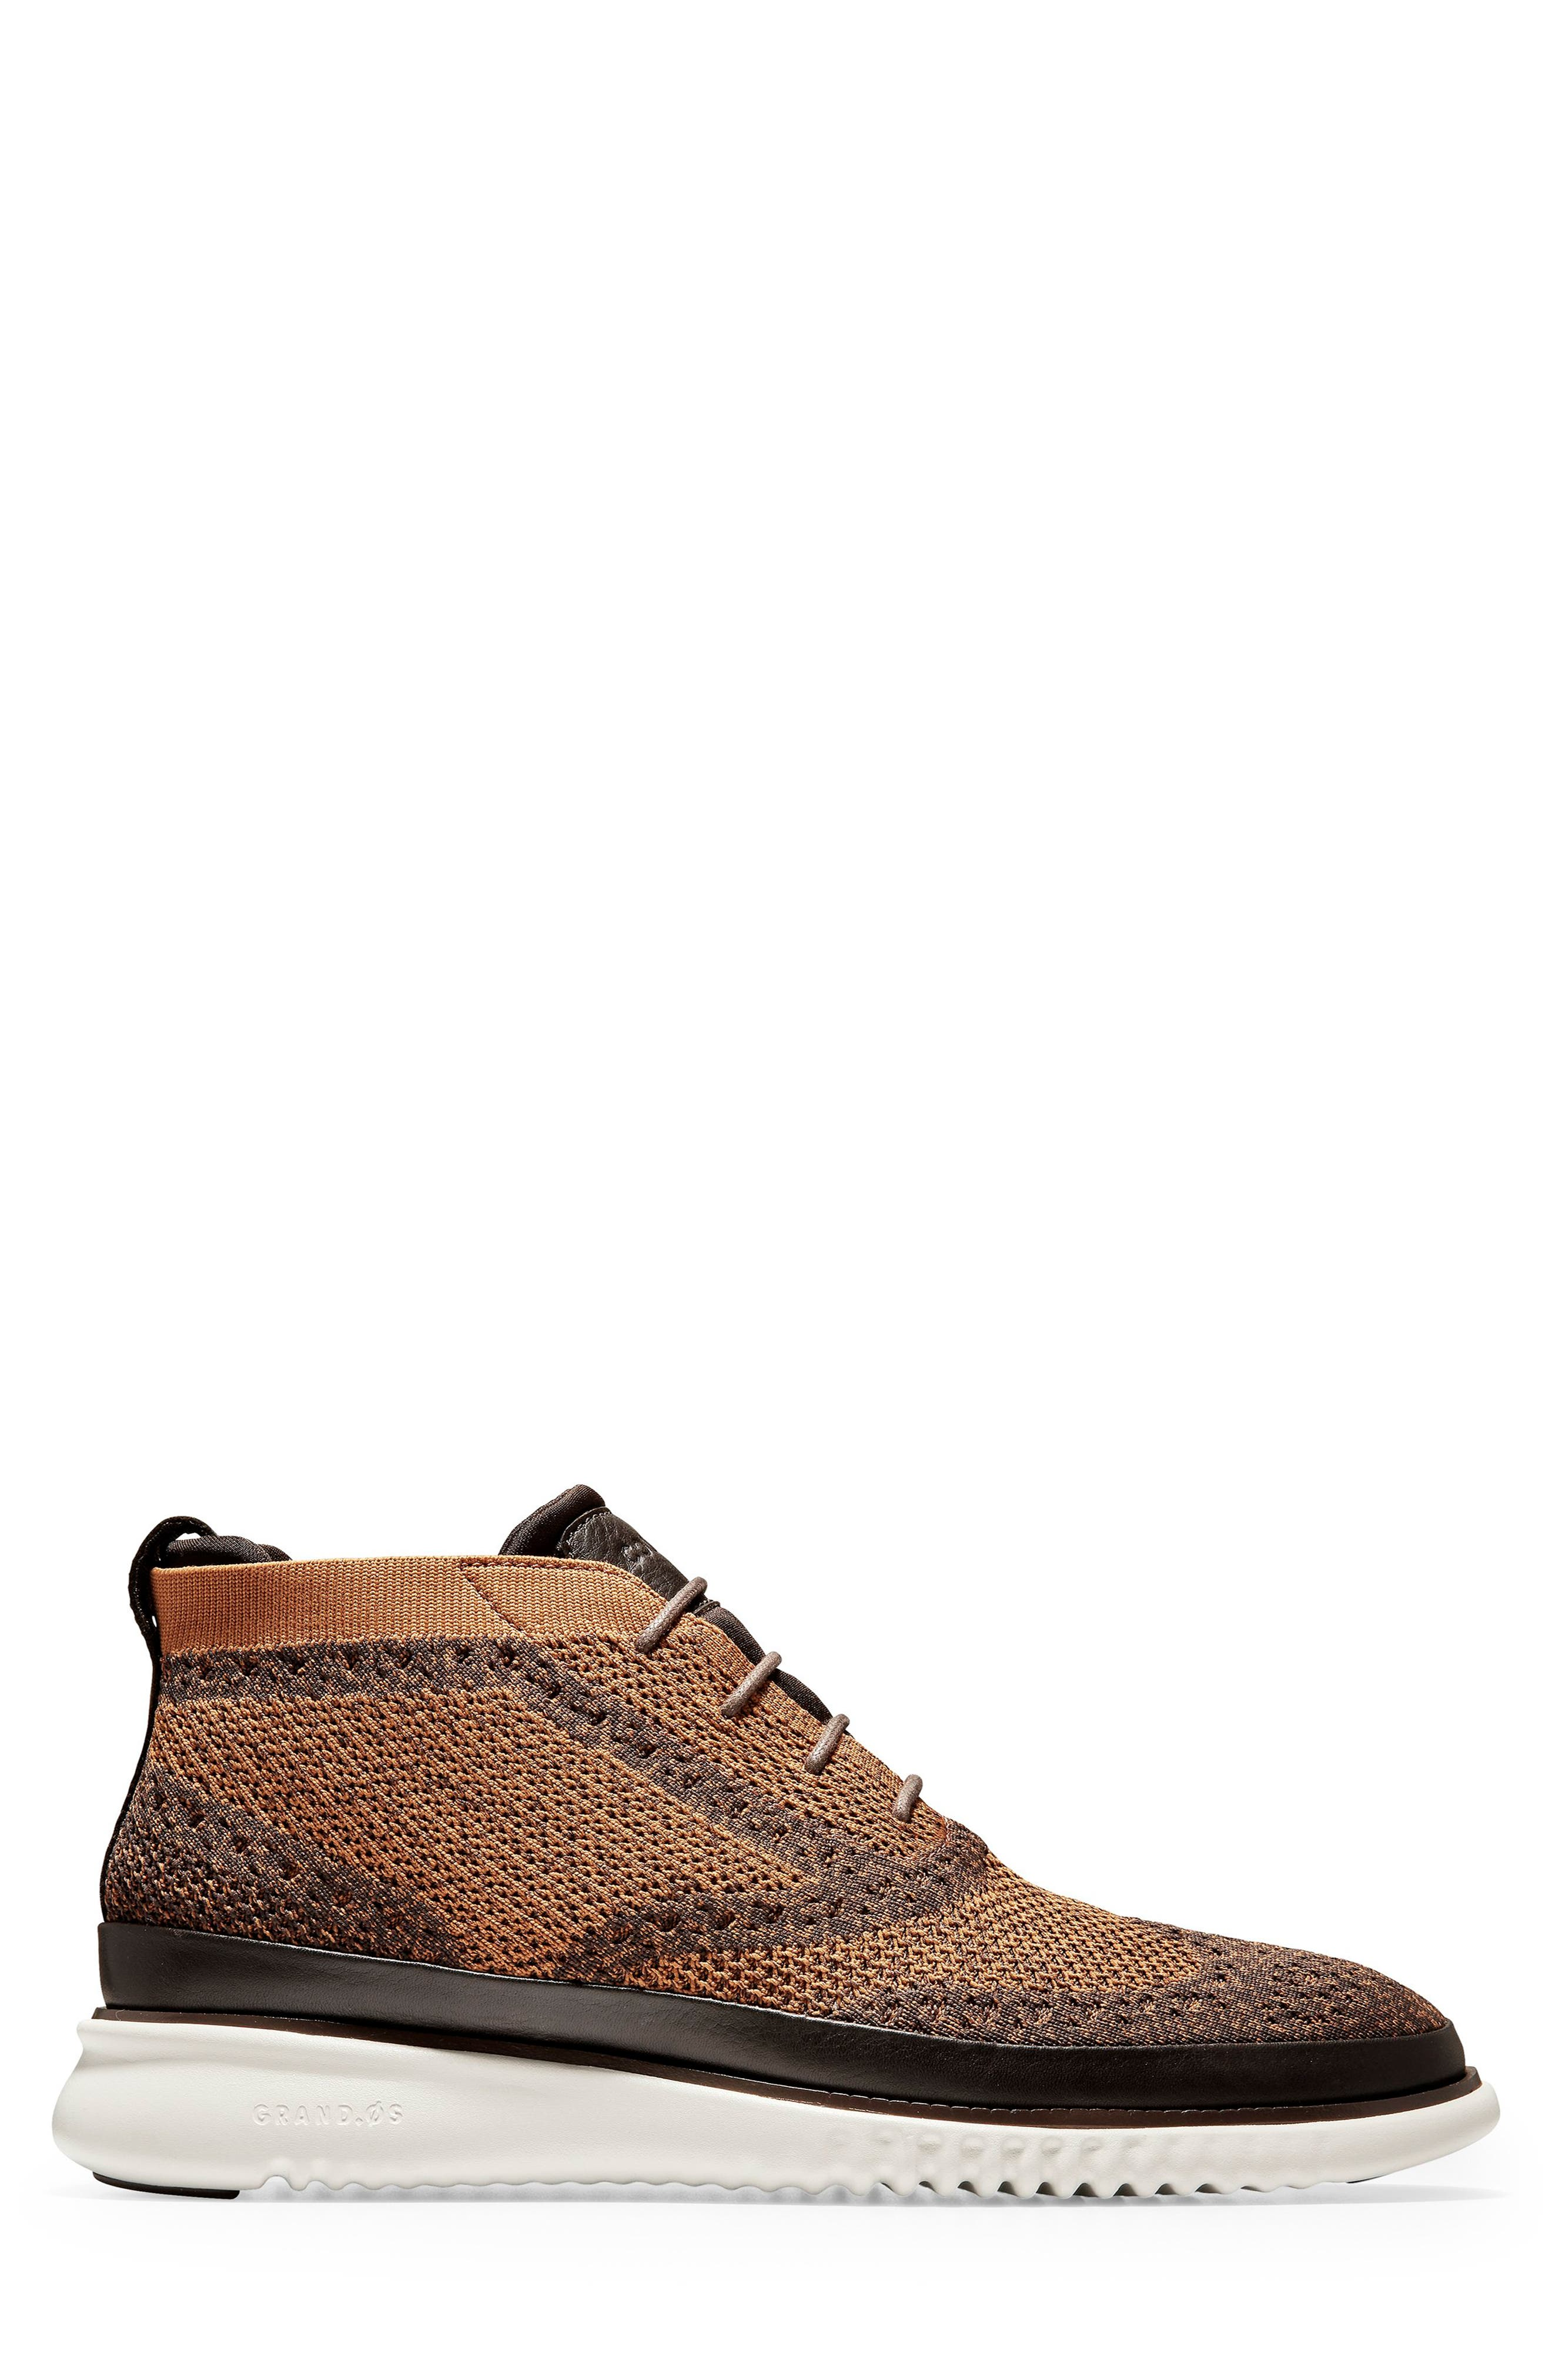 2.ZeroGrand Stitchlite Water Resistant Chukka Boot,                             Alternate thumbnail 3, color,                             BROWN HEATHERED KNIT